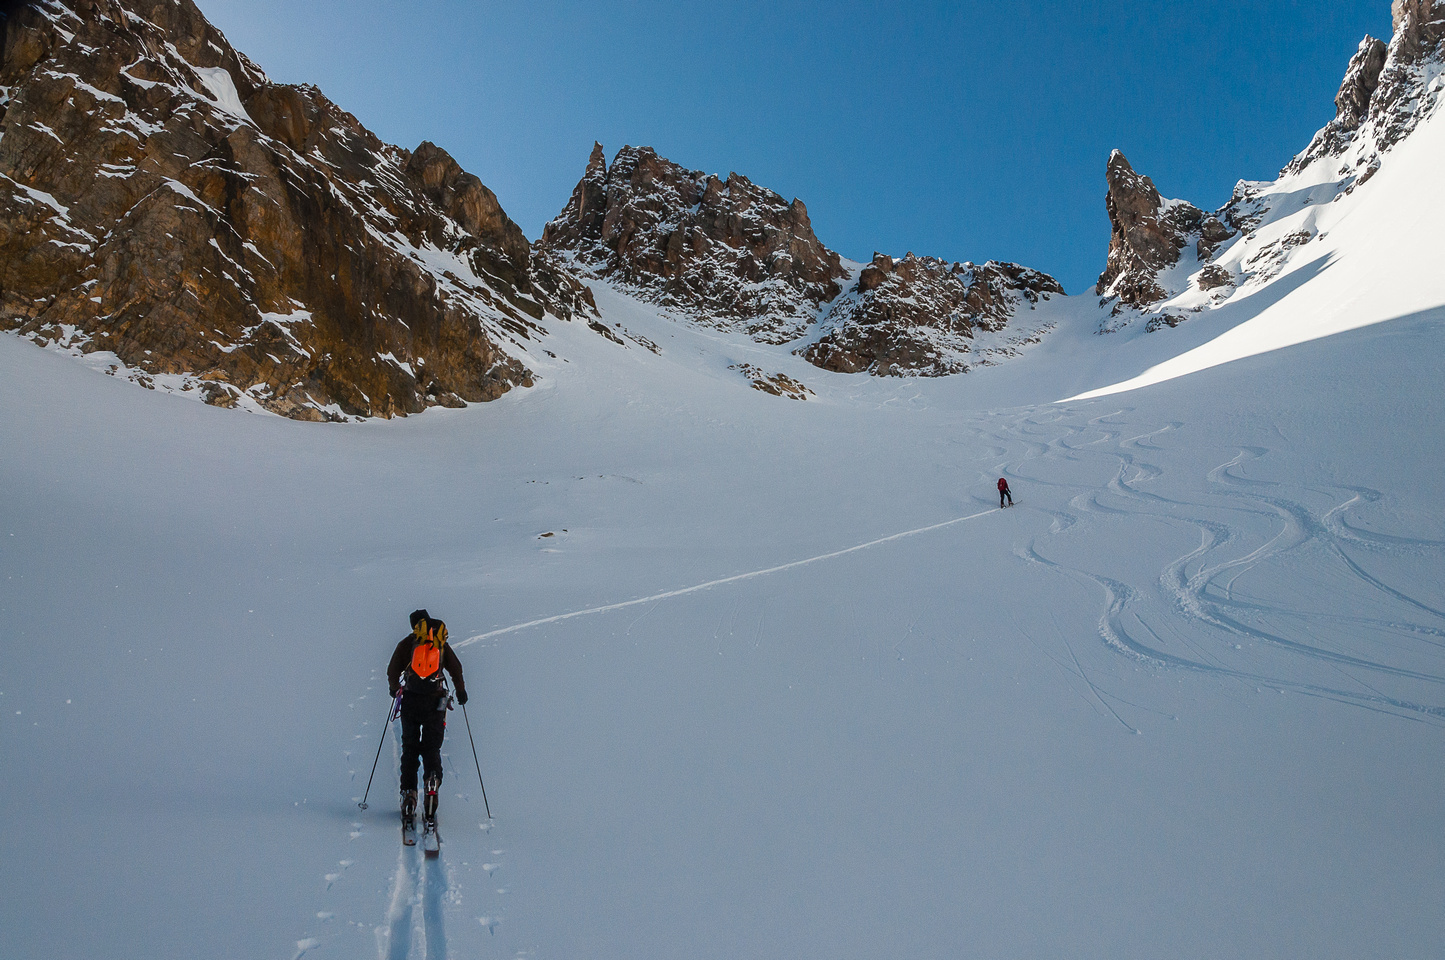 The terrain here is much steeper than it appears as we near the col.